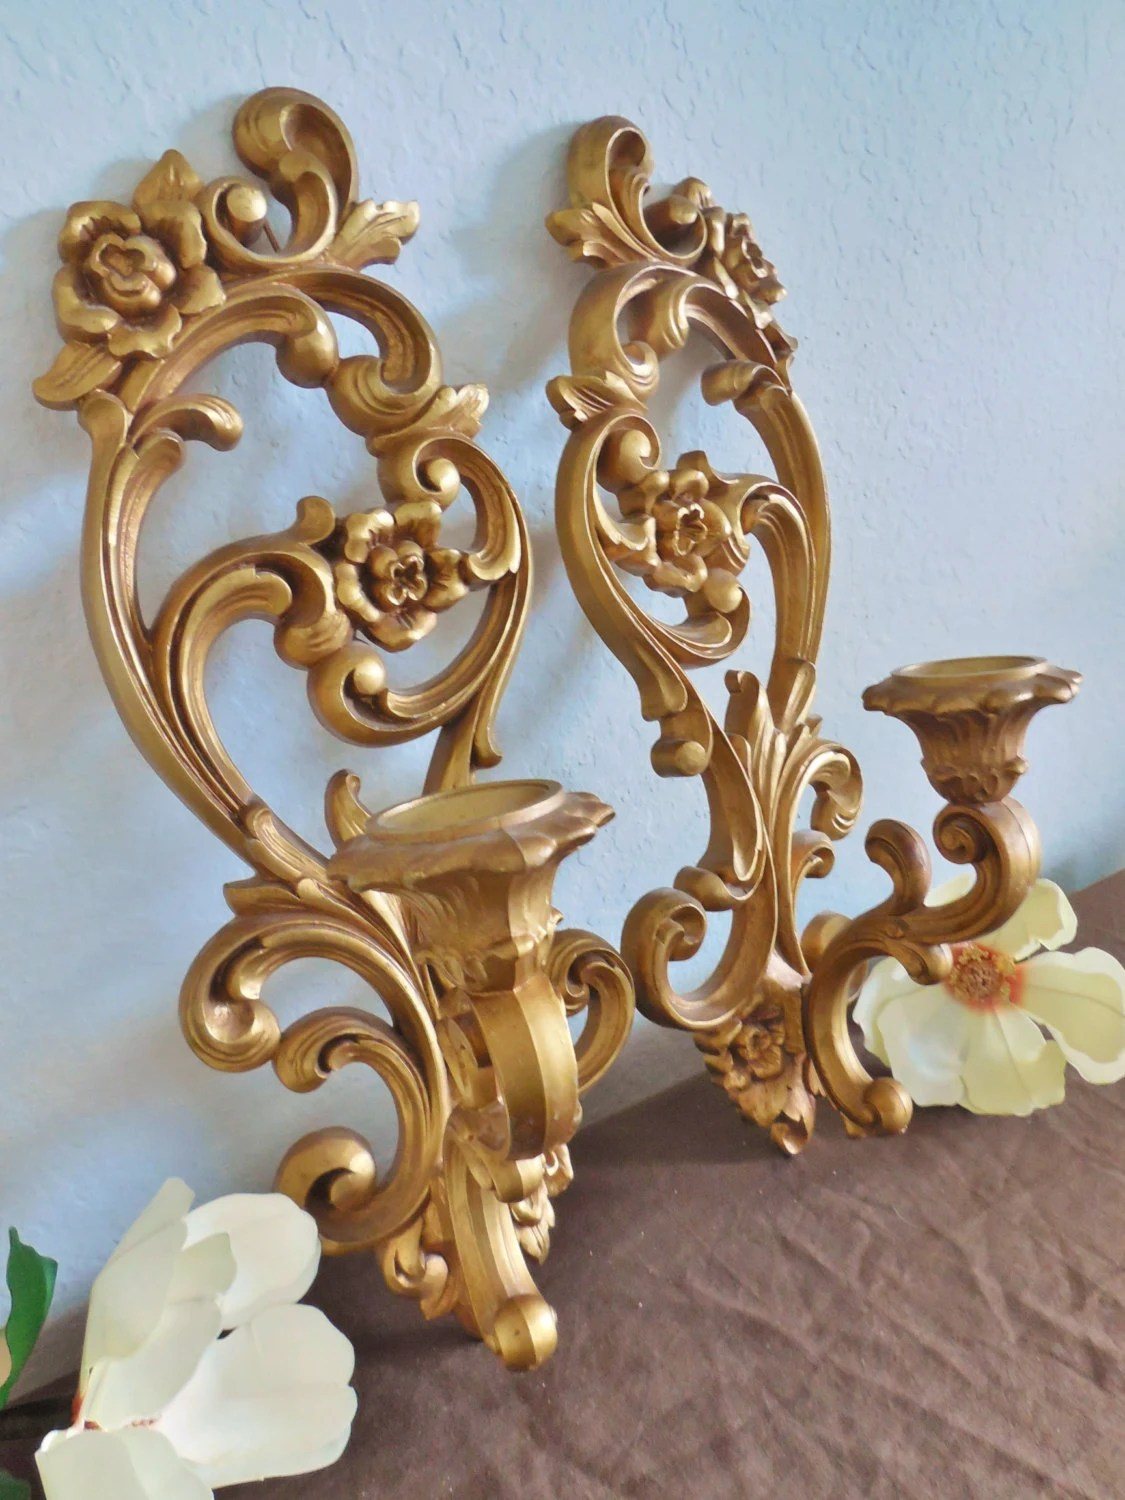 Gold Flower Wall Sconce Candle Holder Set of 2 Vintage Homco on Candle Wall Sconces With Flowers id=79197